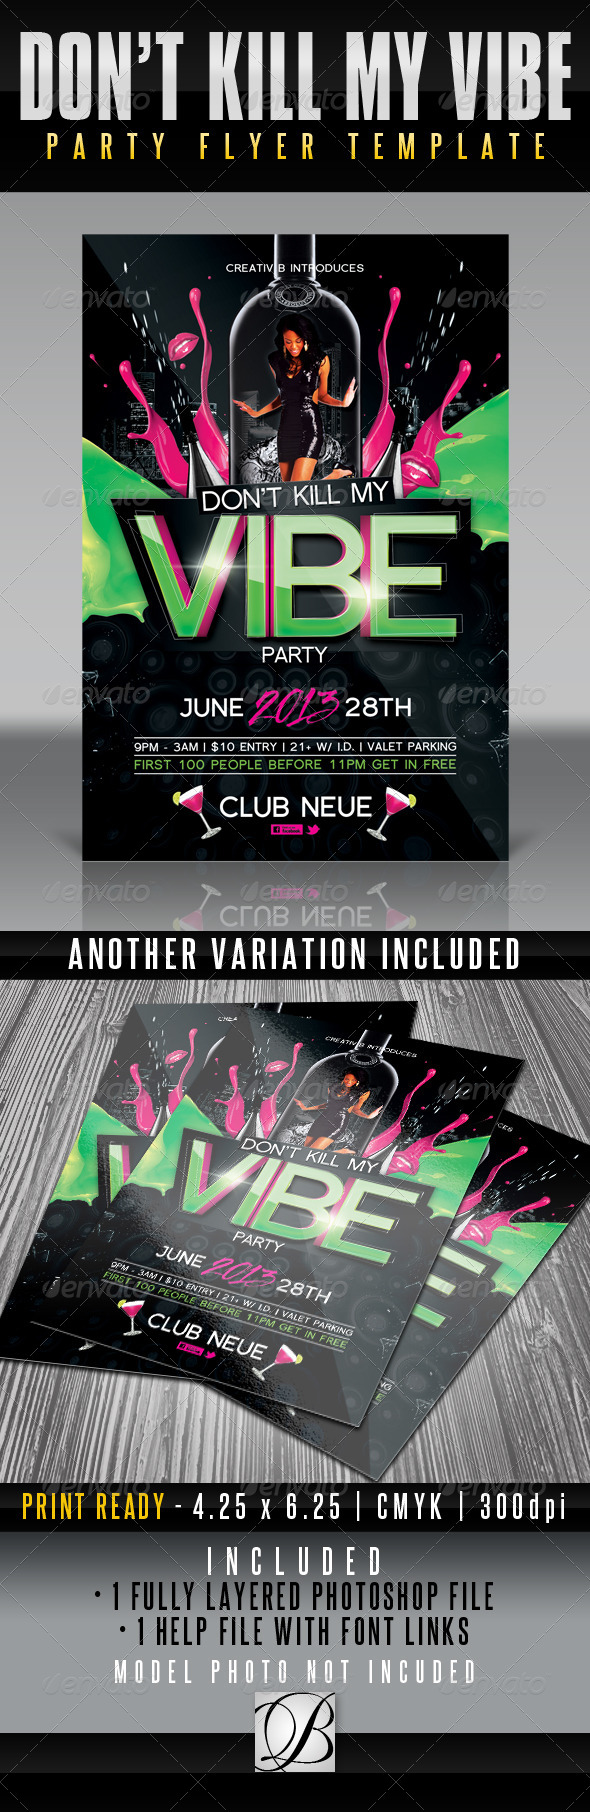 Vibe Party Flyer Template - Clubs & Parties Events